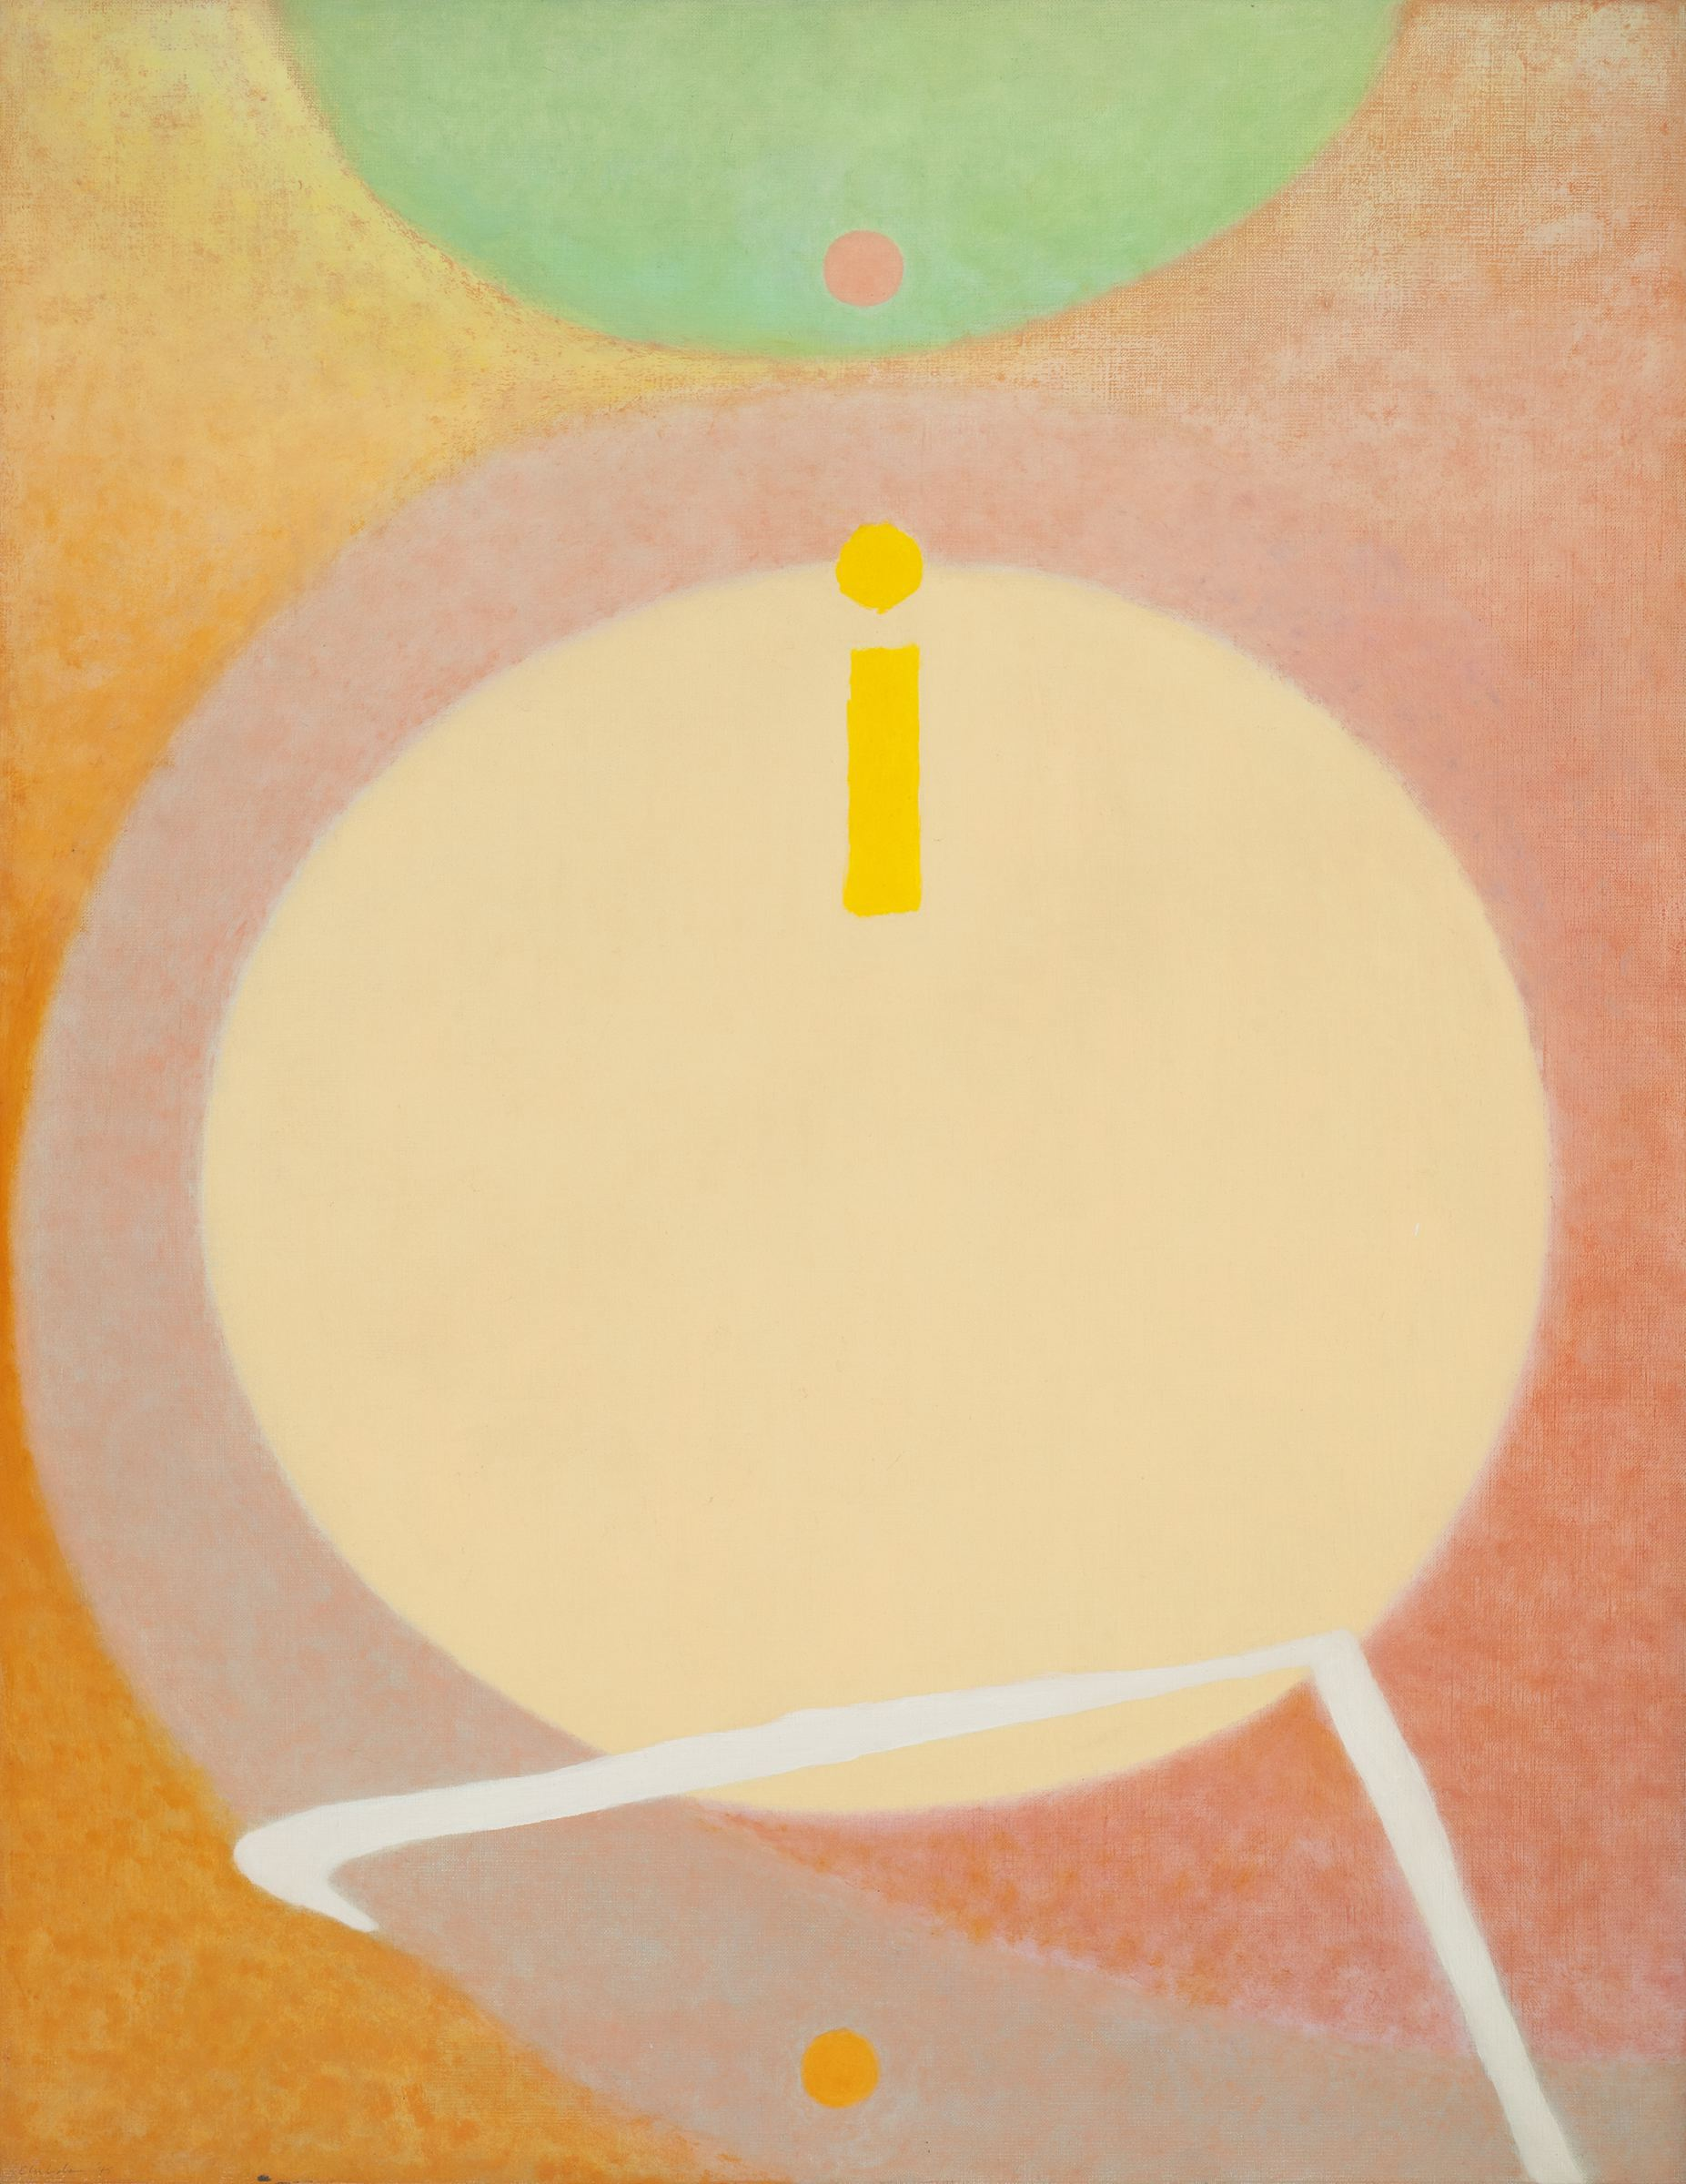 Bernard Childs  (1910-1985)  Round the Bend (Requiem for Y. Tabuchi, père) , 1975 Oil on canvas 25 7/16 x 18 1/4 inches 64.6 x 46.4 cm